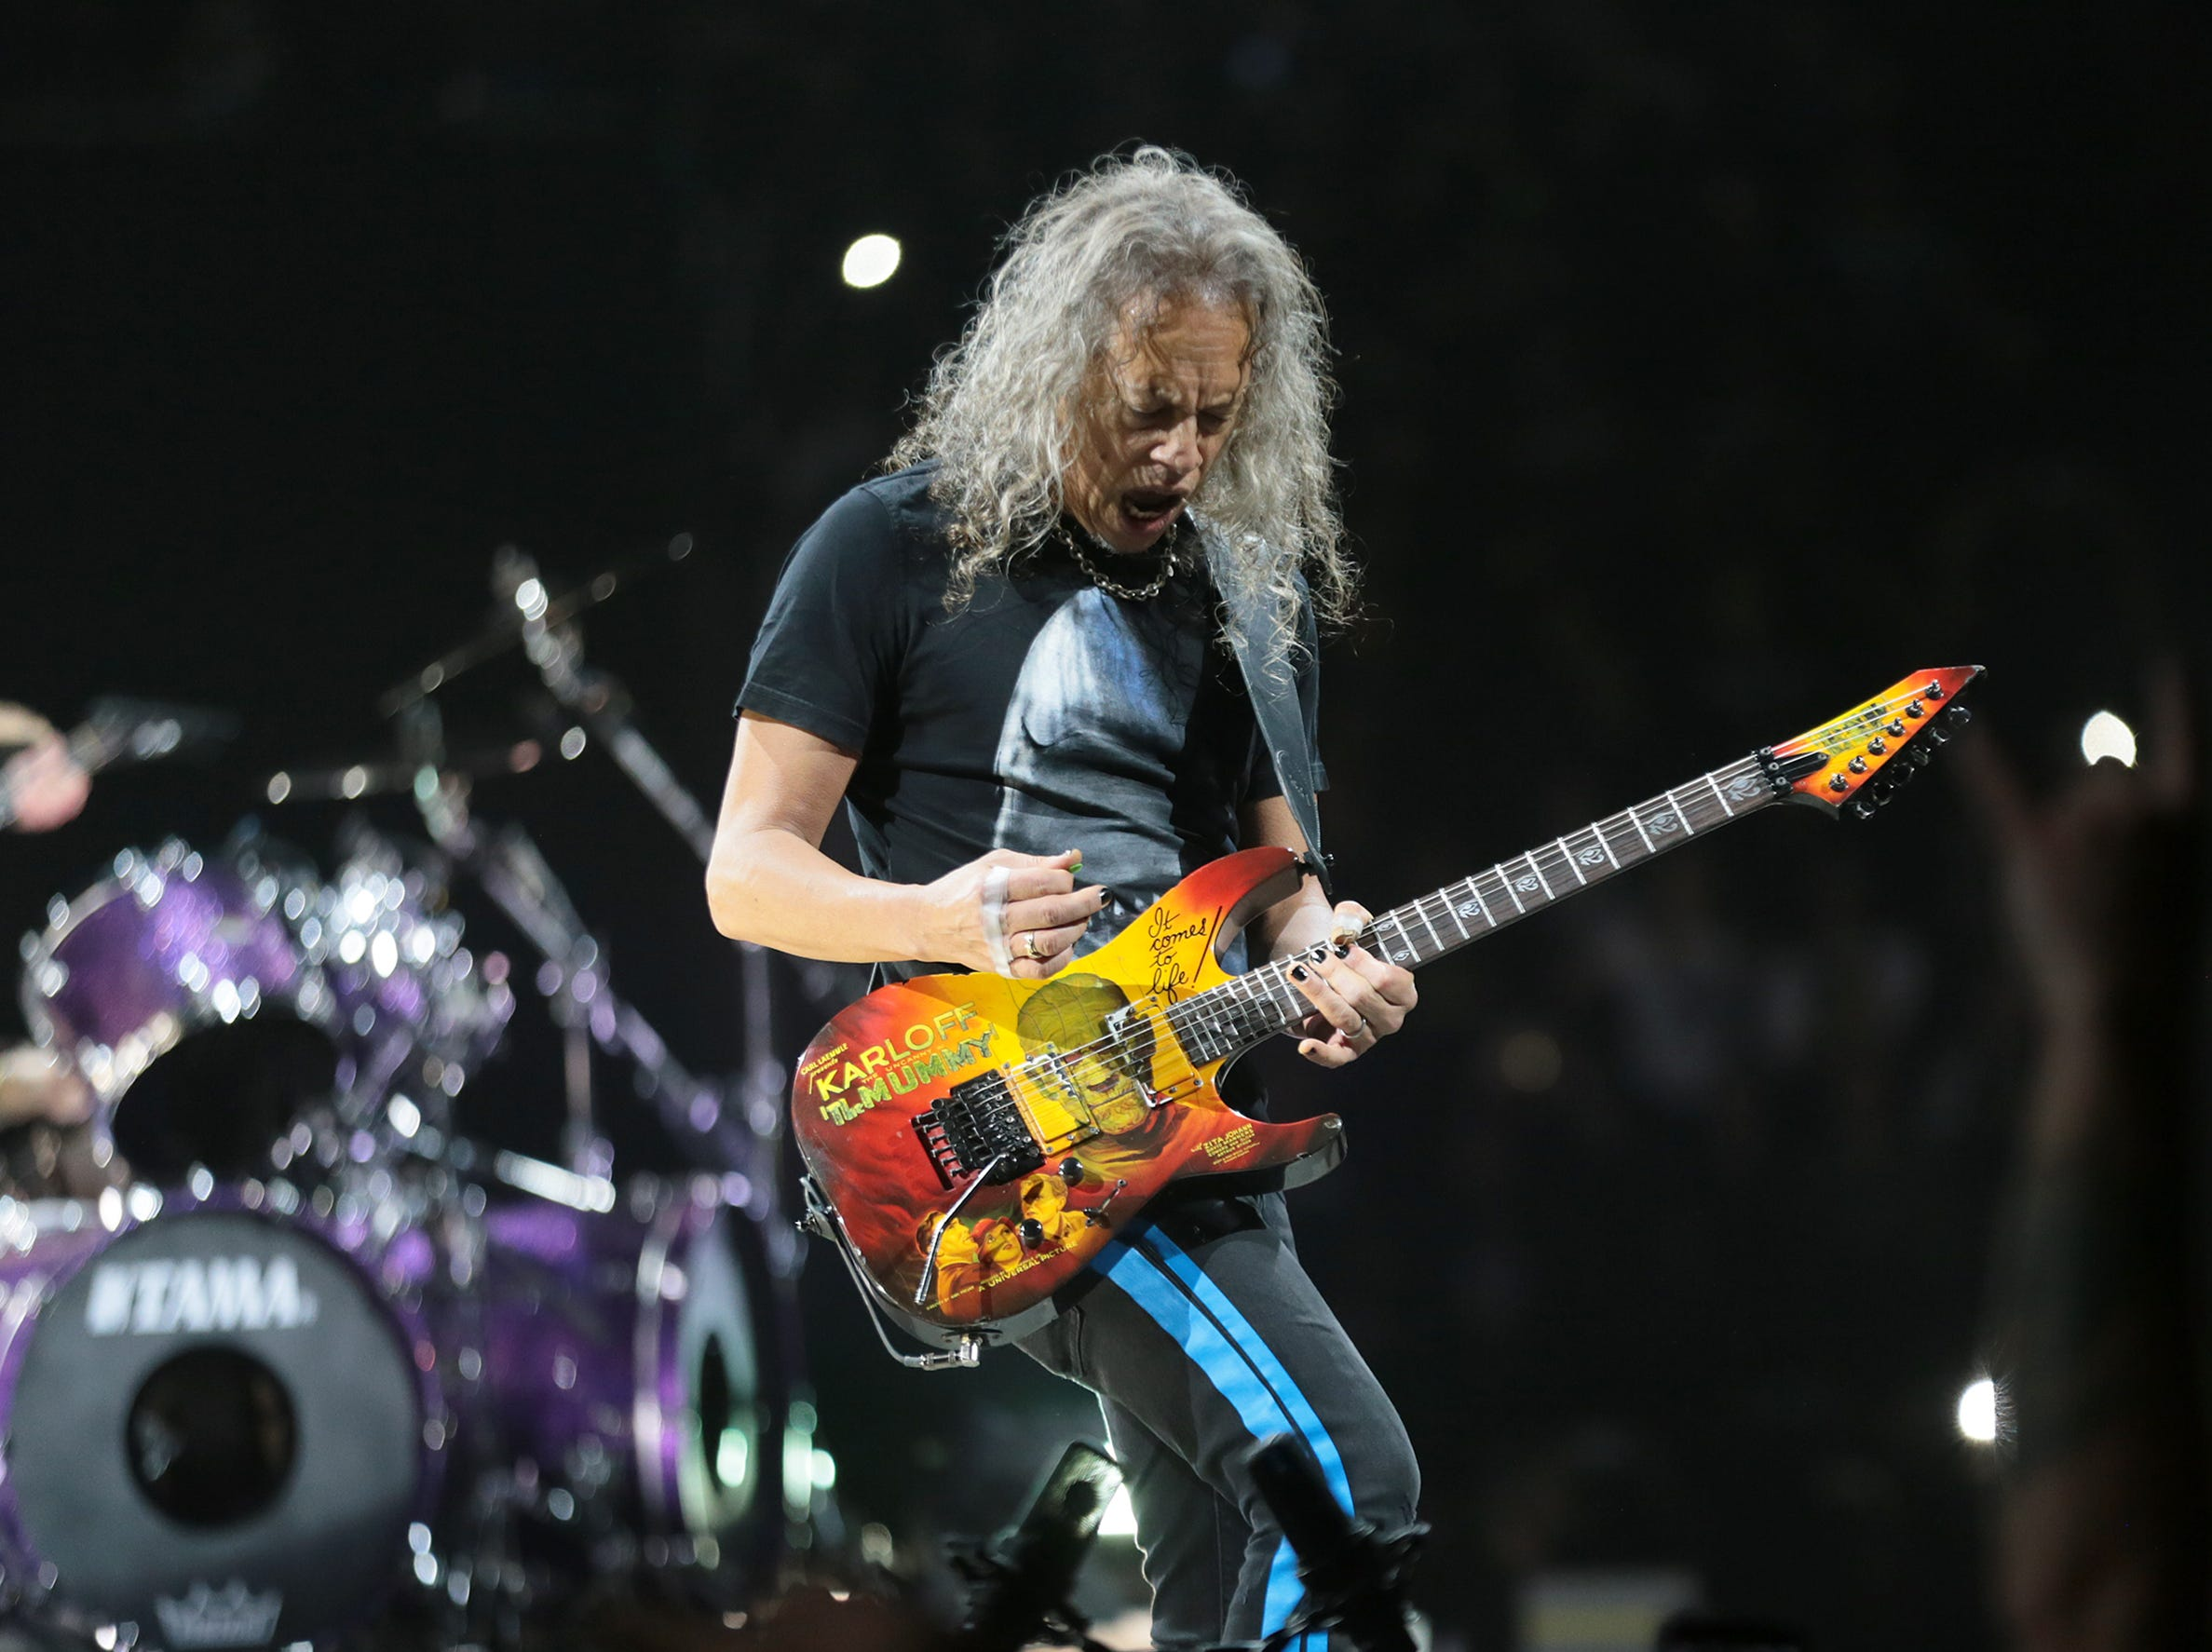 Metallica lead guitarist Kirk Hammett plays to a sold-out Don Haskins Center on Thursday night, Feb. 28, 2019.